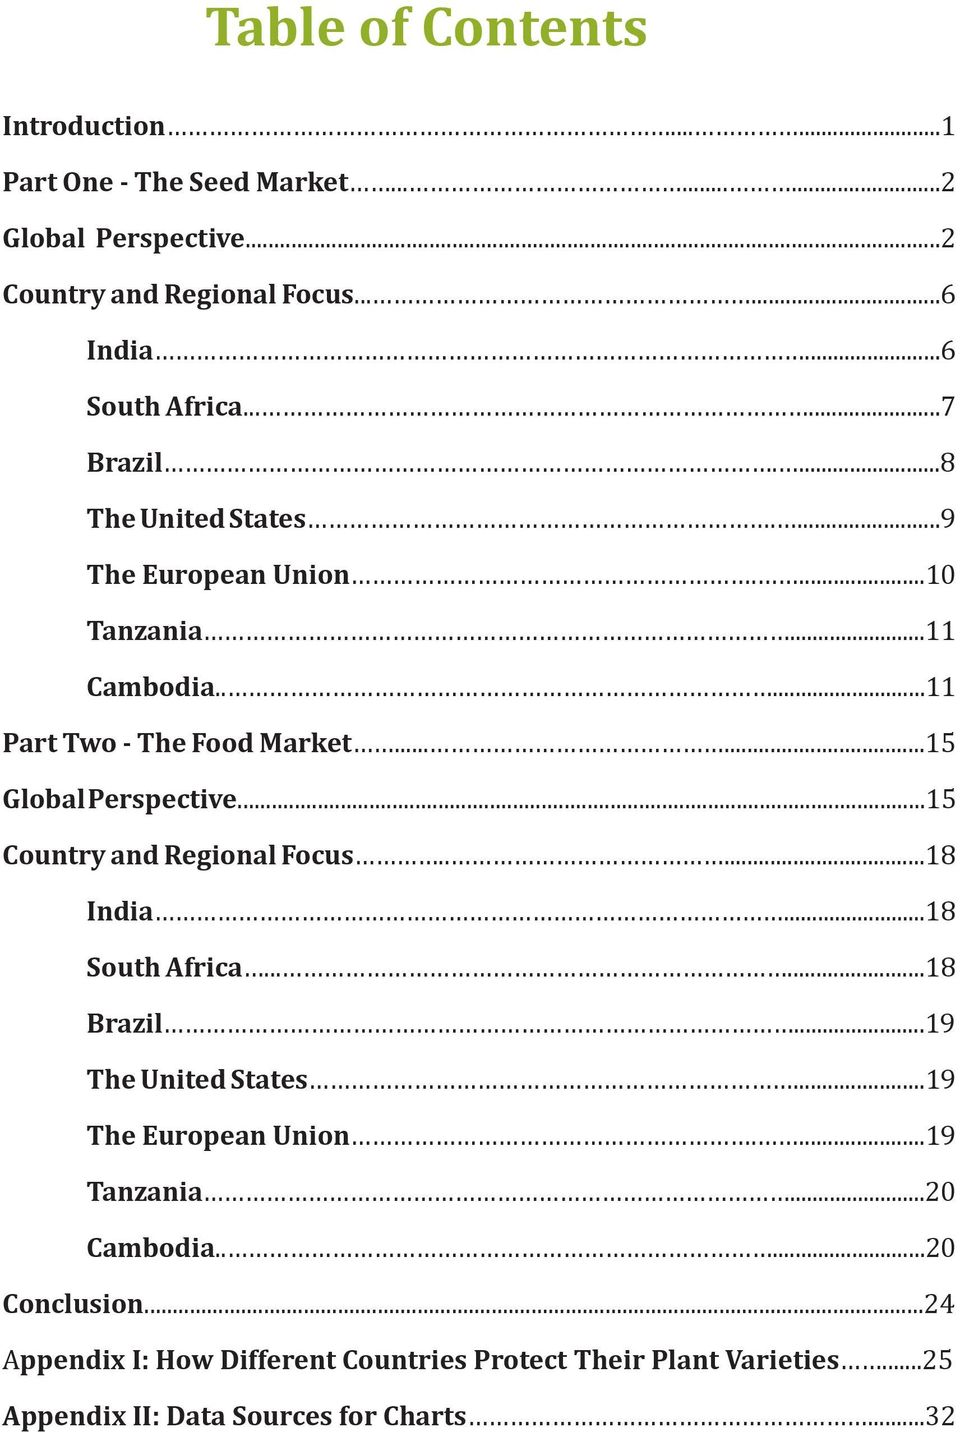 .....15 Global Perspective...15 Country and Regional Focus.....18 India...18 South Africa......18 Brazil...19 The United States.